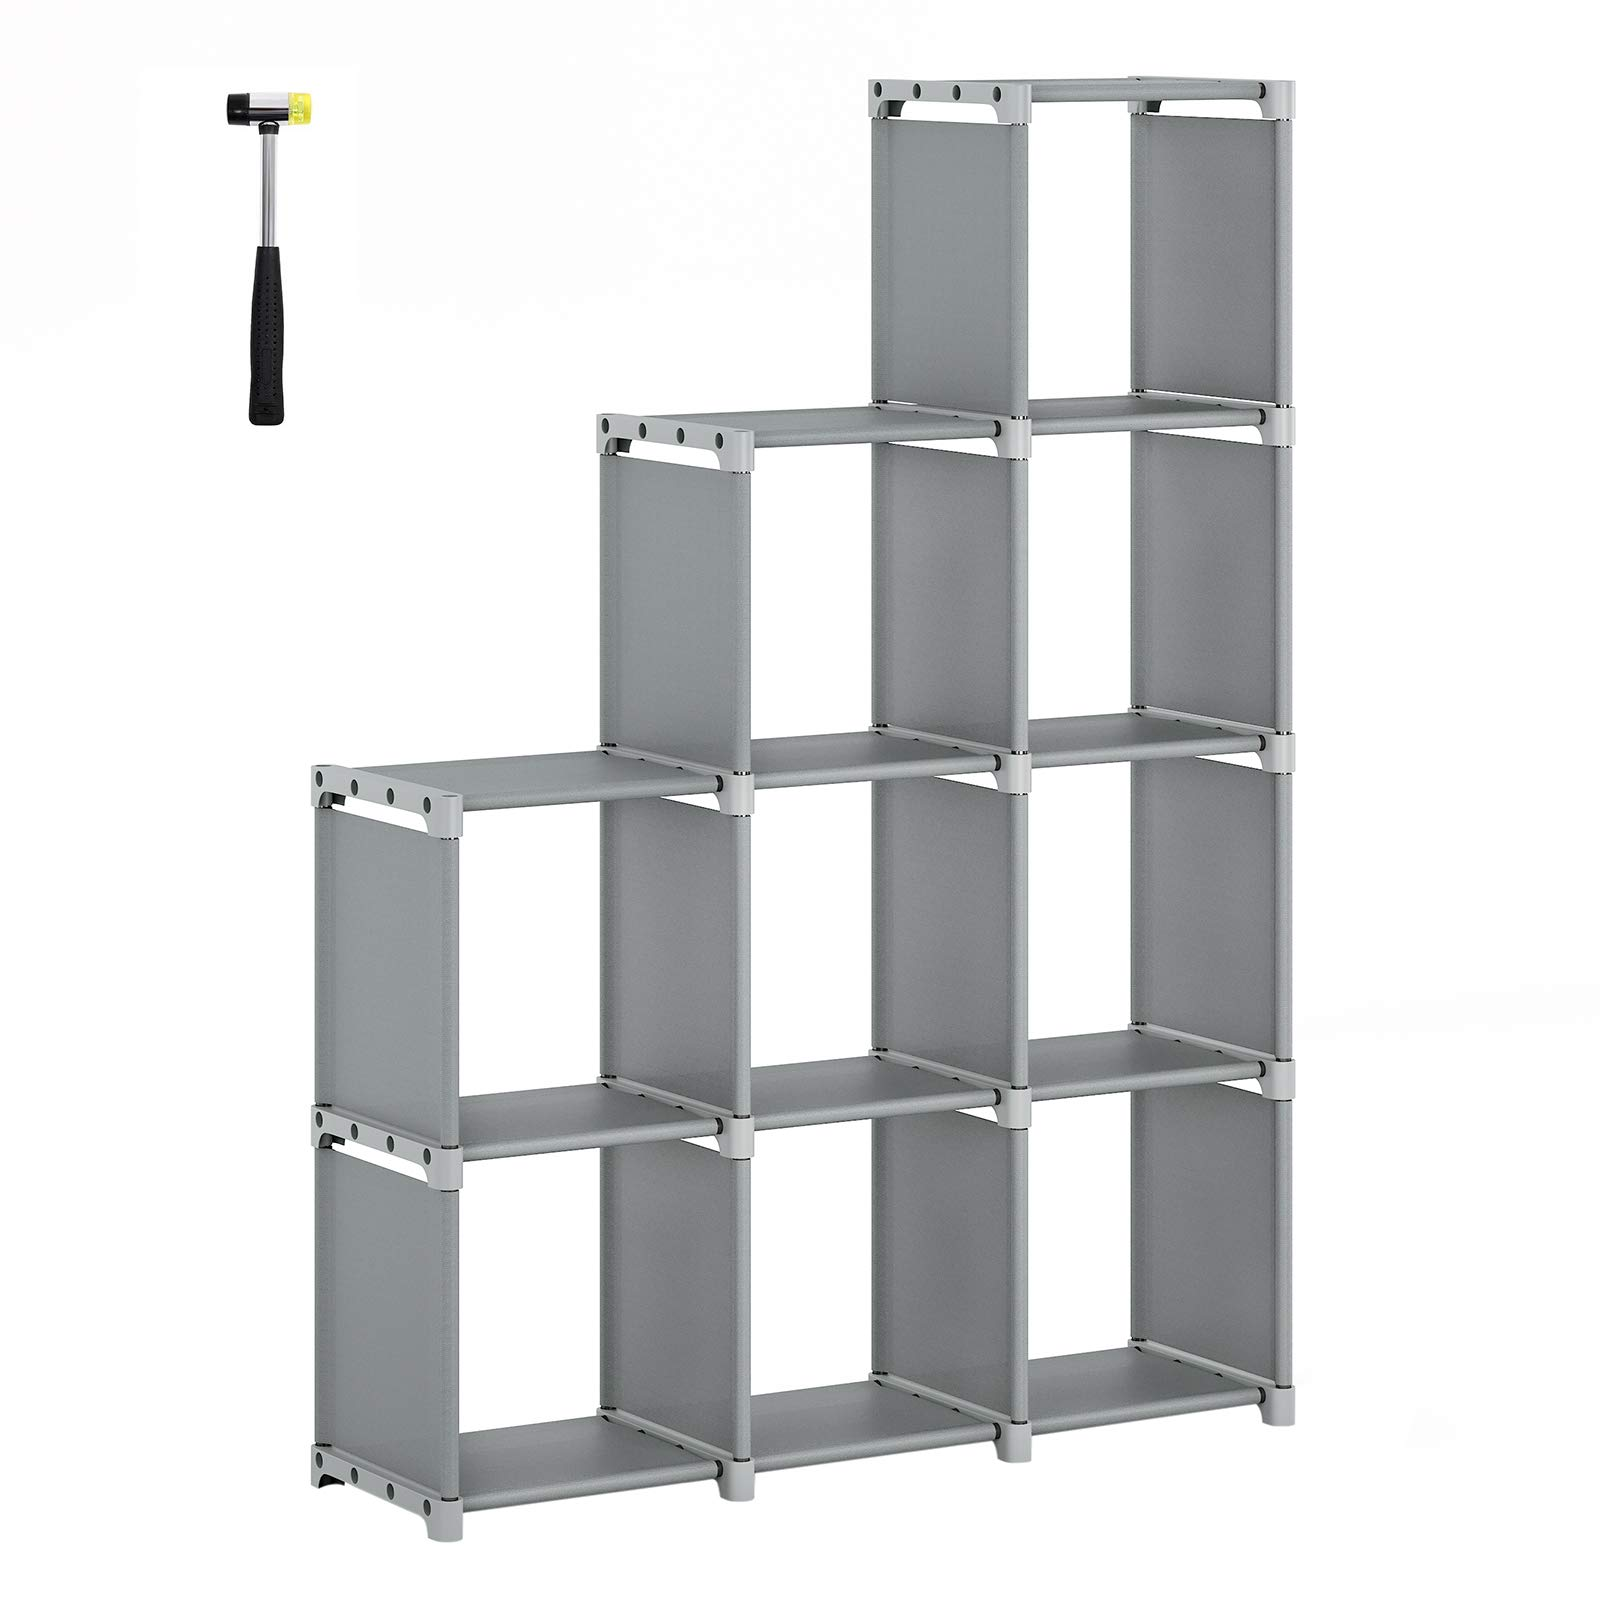 SONGMICS 9-Cube DIY Storage Shelves, Open Bookshelf, Closet Organizer, for Family Study, Living Room, Bedroom, Kid's Room, Gray ULSN33GY